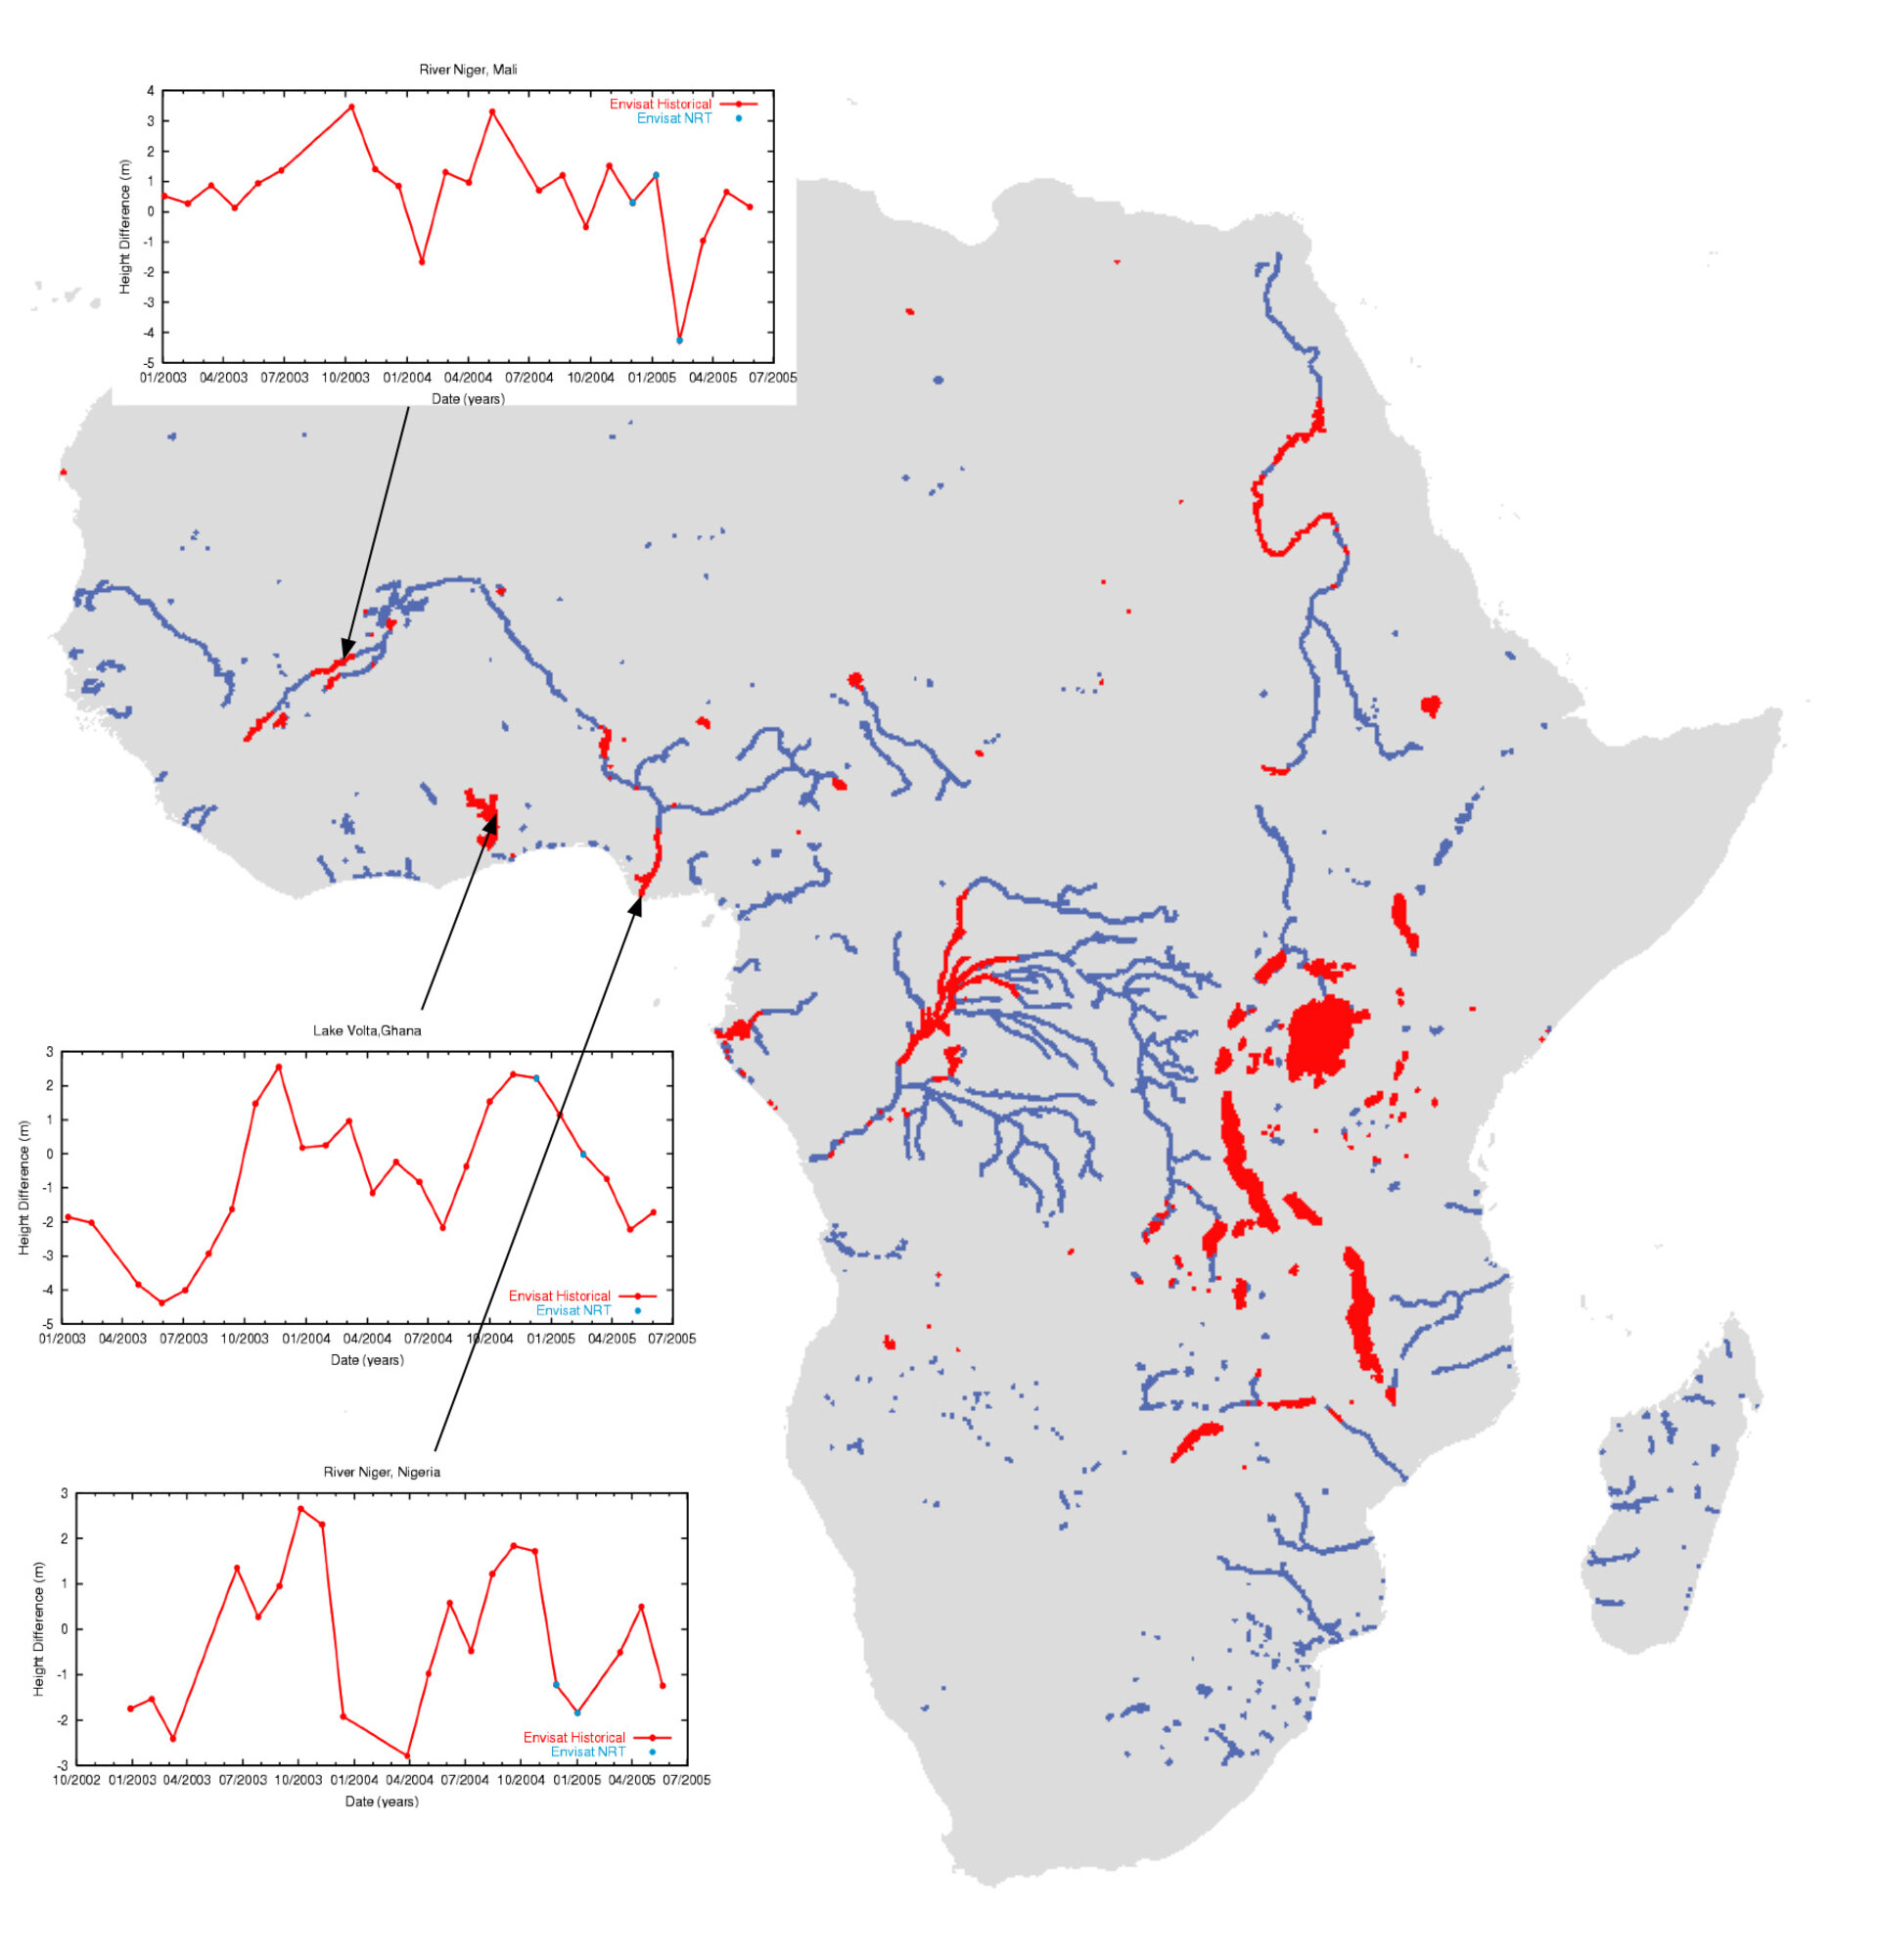 Altimetry-derived rivers and lake levels